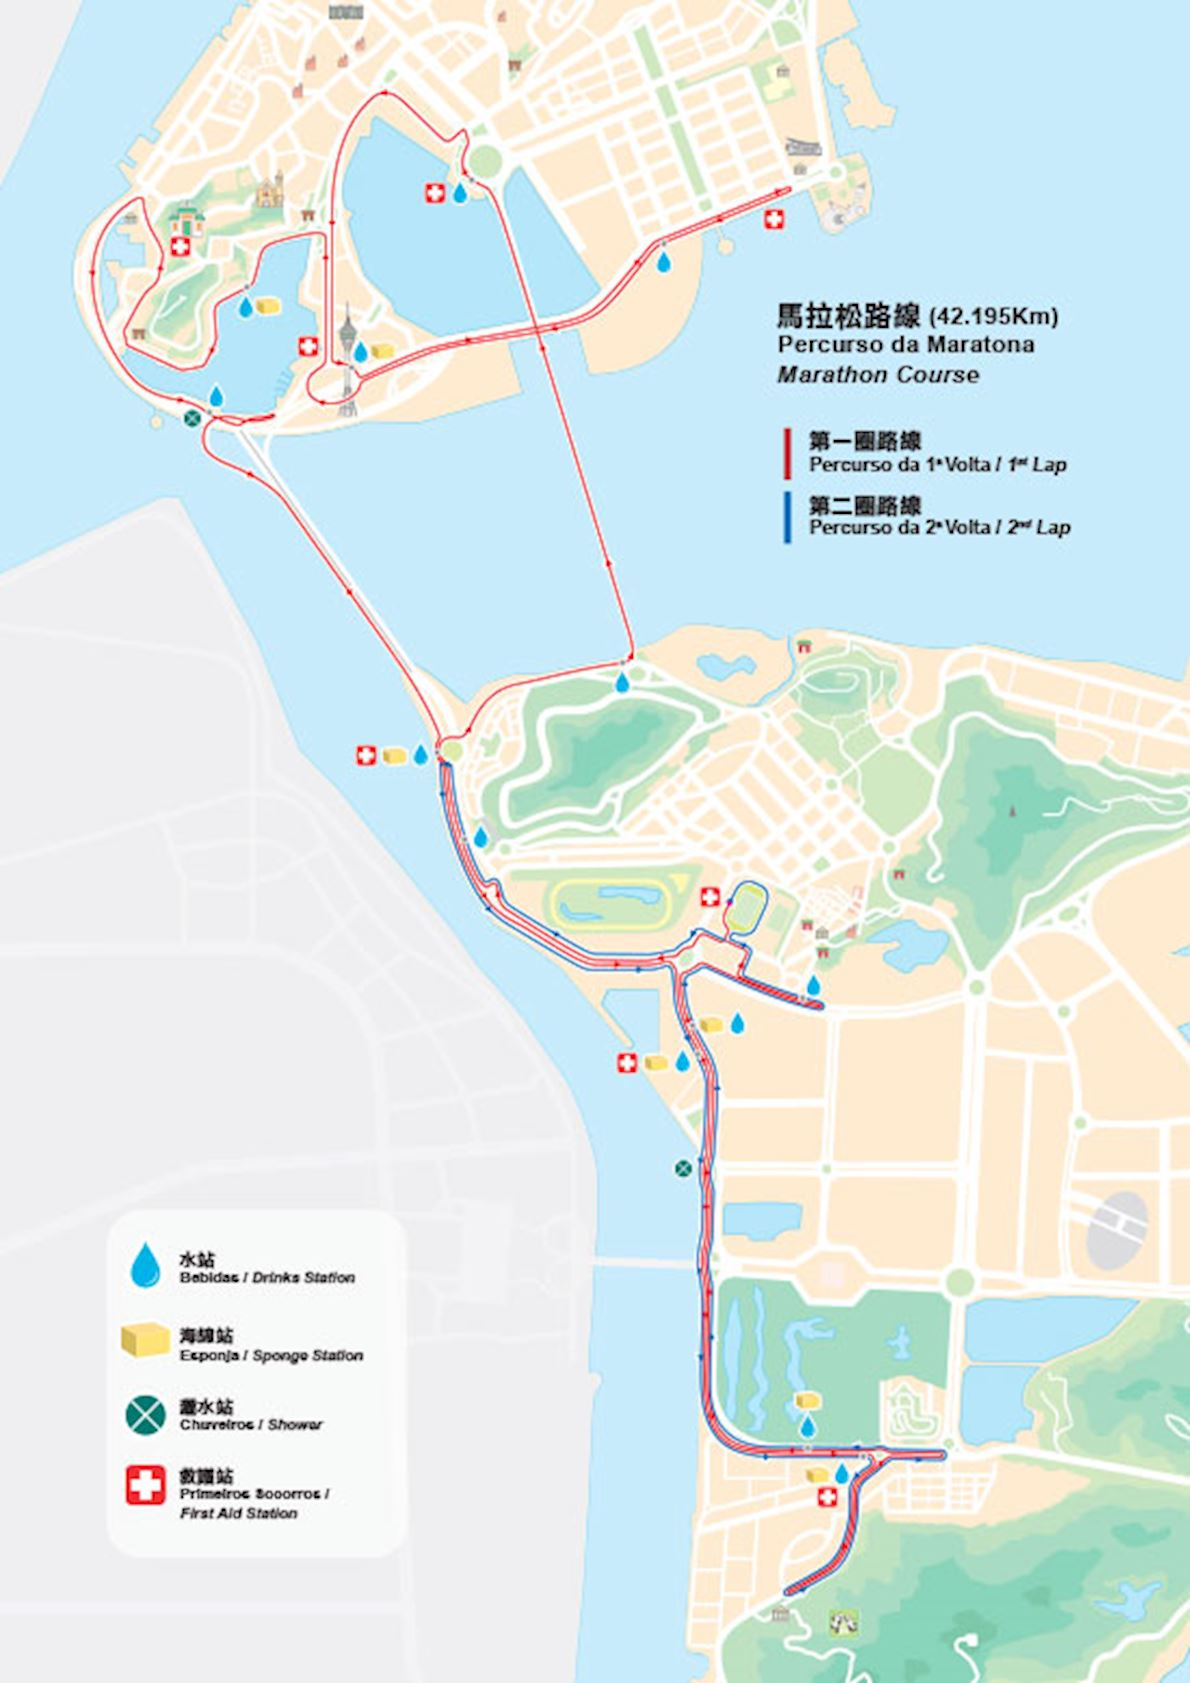 Macau Galaxy Entertainment International Marathon MAPA DEL RECORRIDO DE